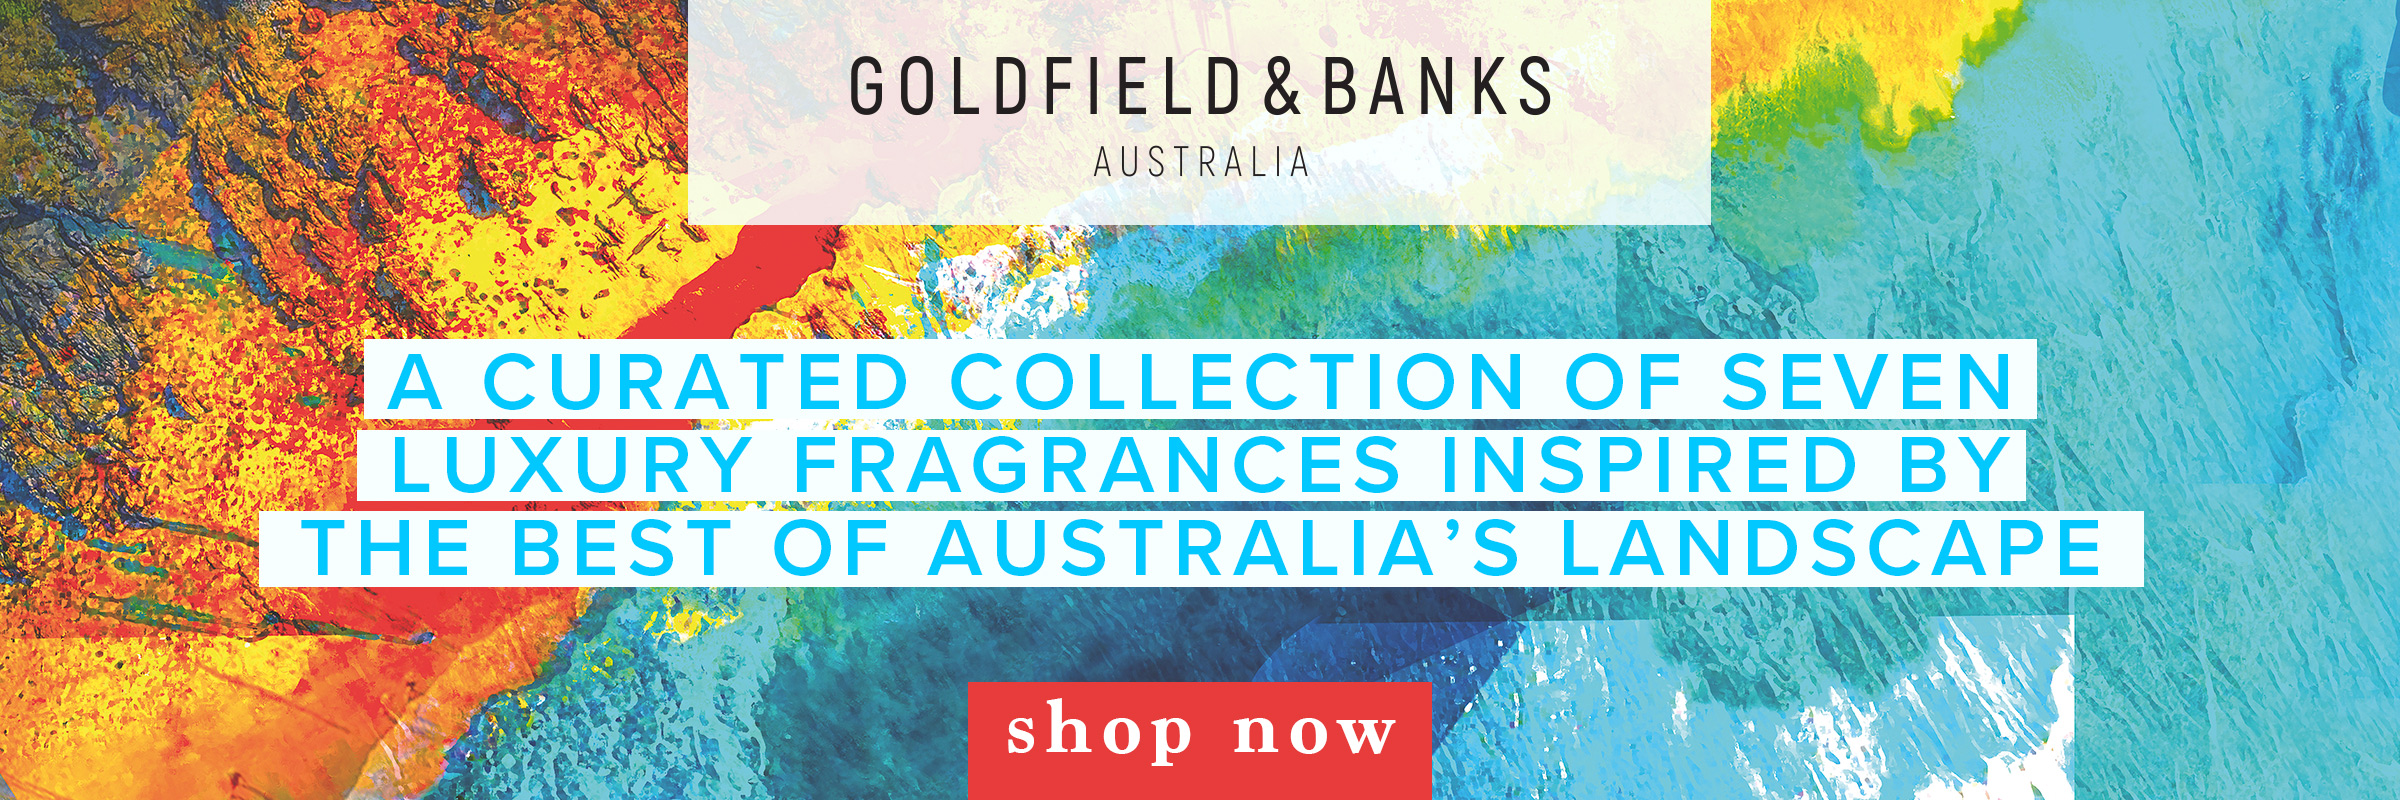 goldfield and banks perfume